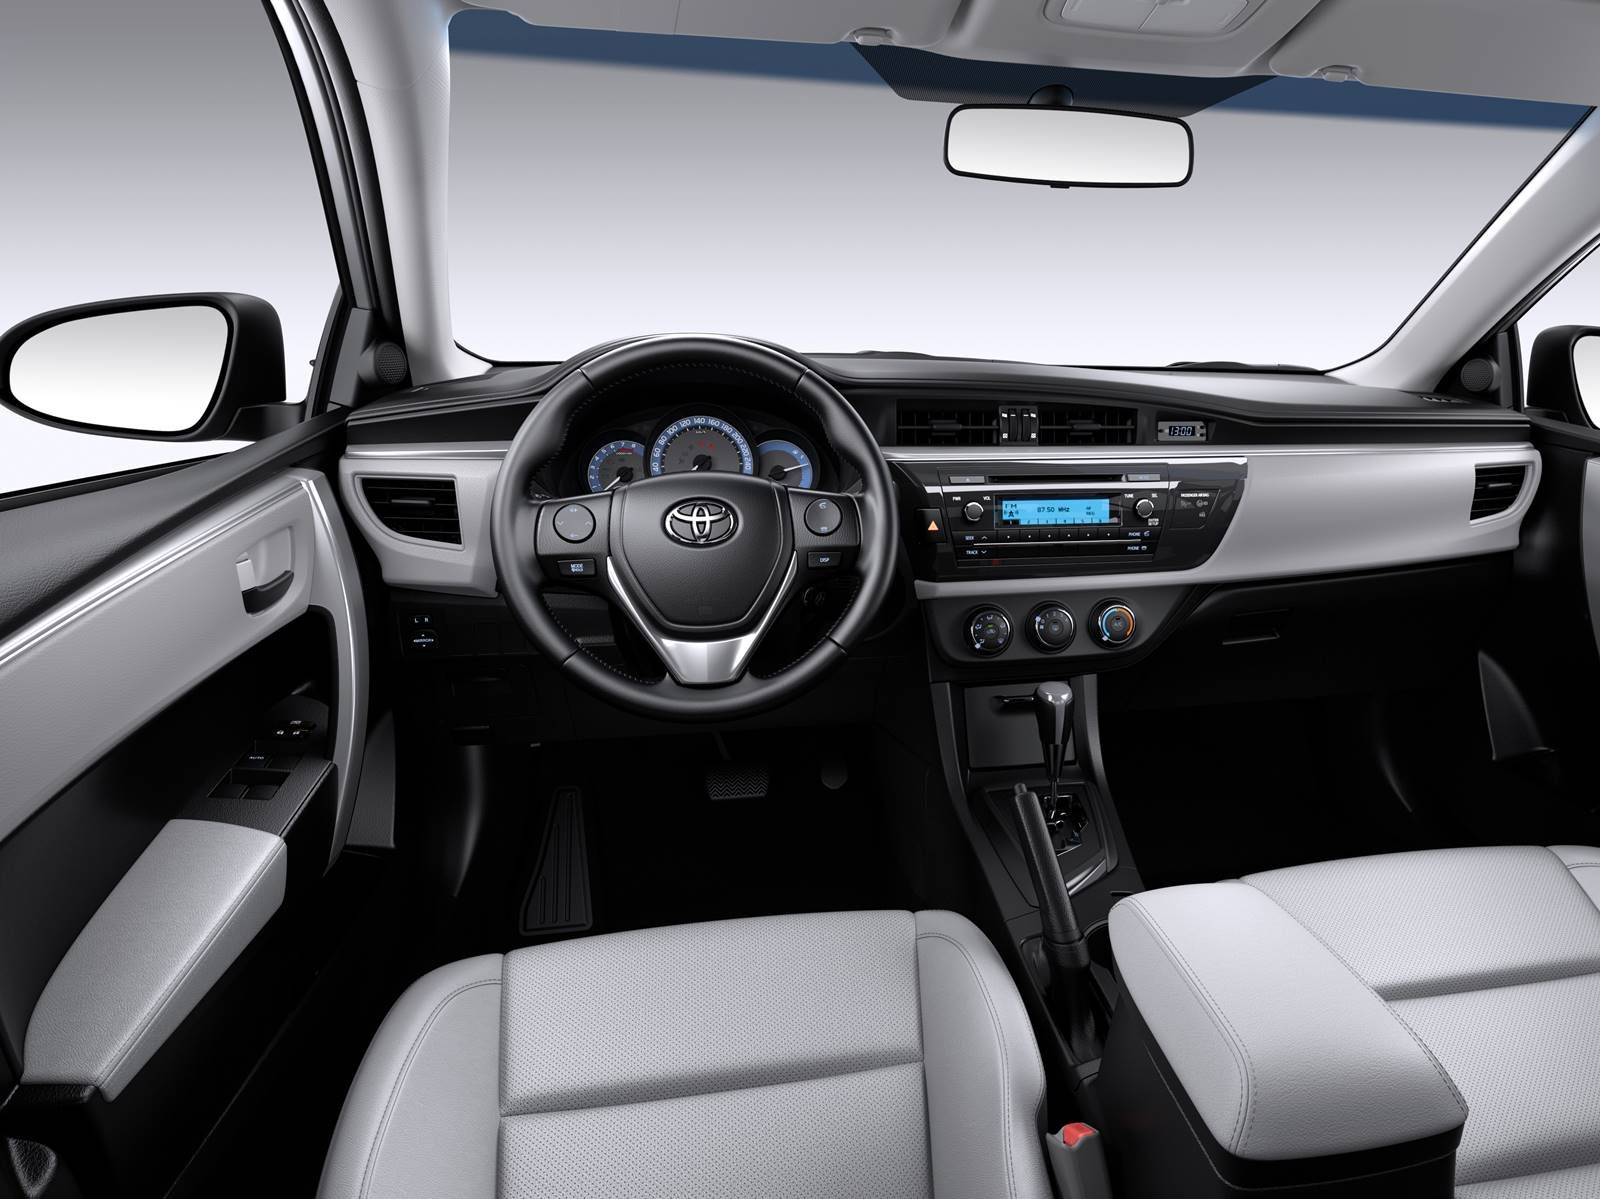 2017 toyota corolla interior dashboard toyota pinterest toyota corolla toyota and cars